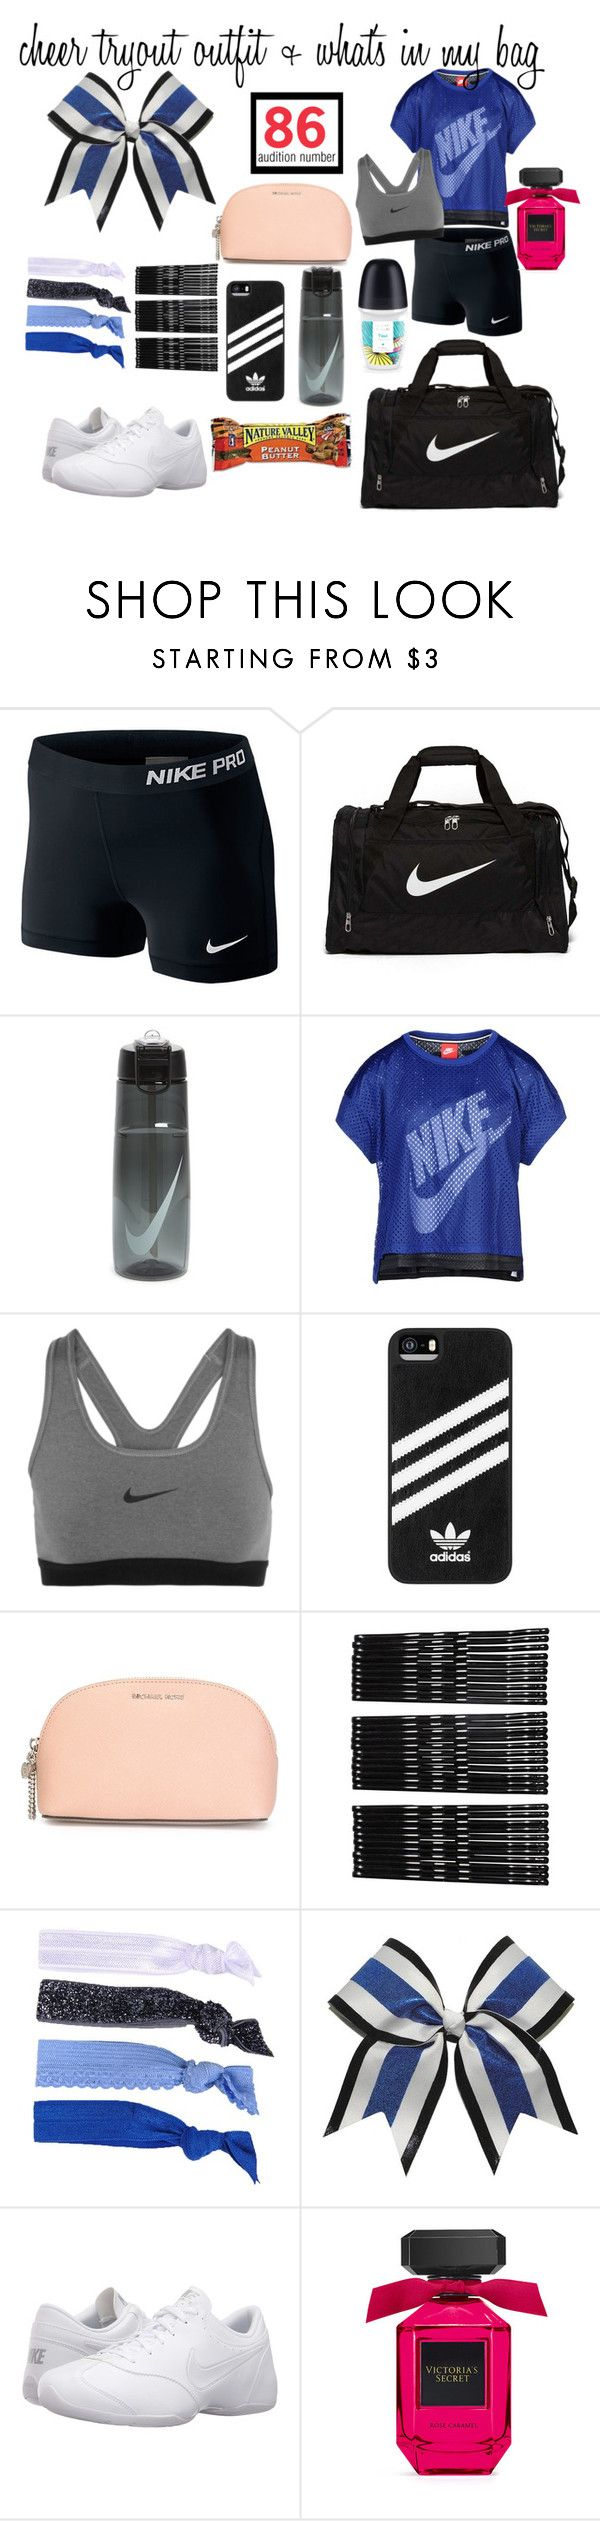 """cheer tryout outfit + what's in my bag"" by brooklynwhtie on Polyvore featuring NIKE, adidas, MICHAEL Michael Kors, Monki and Glam Bands"